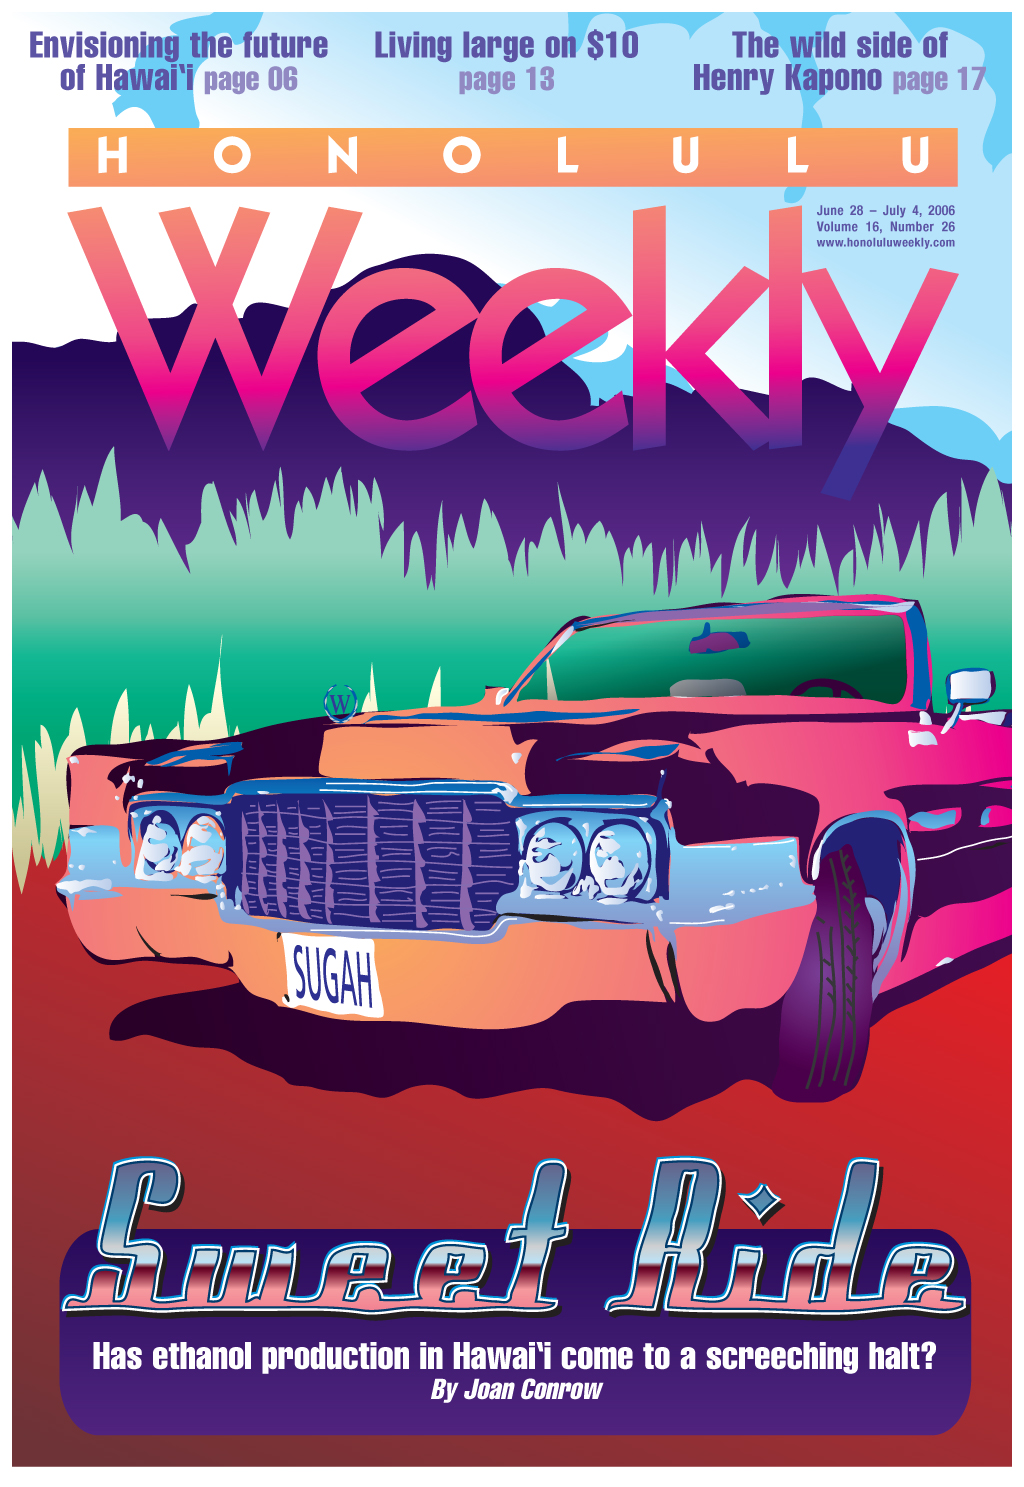 062806 Honolulu Weekly Cover